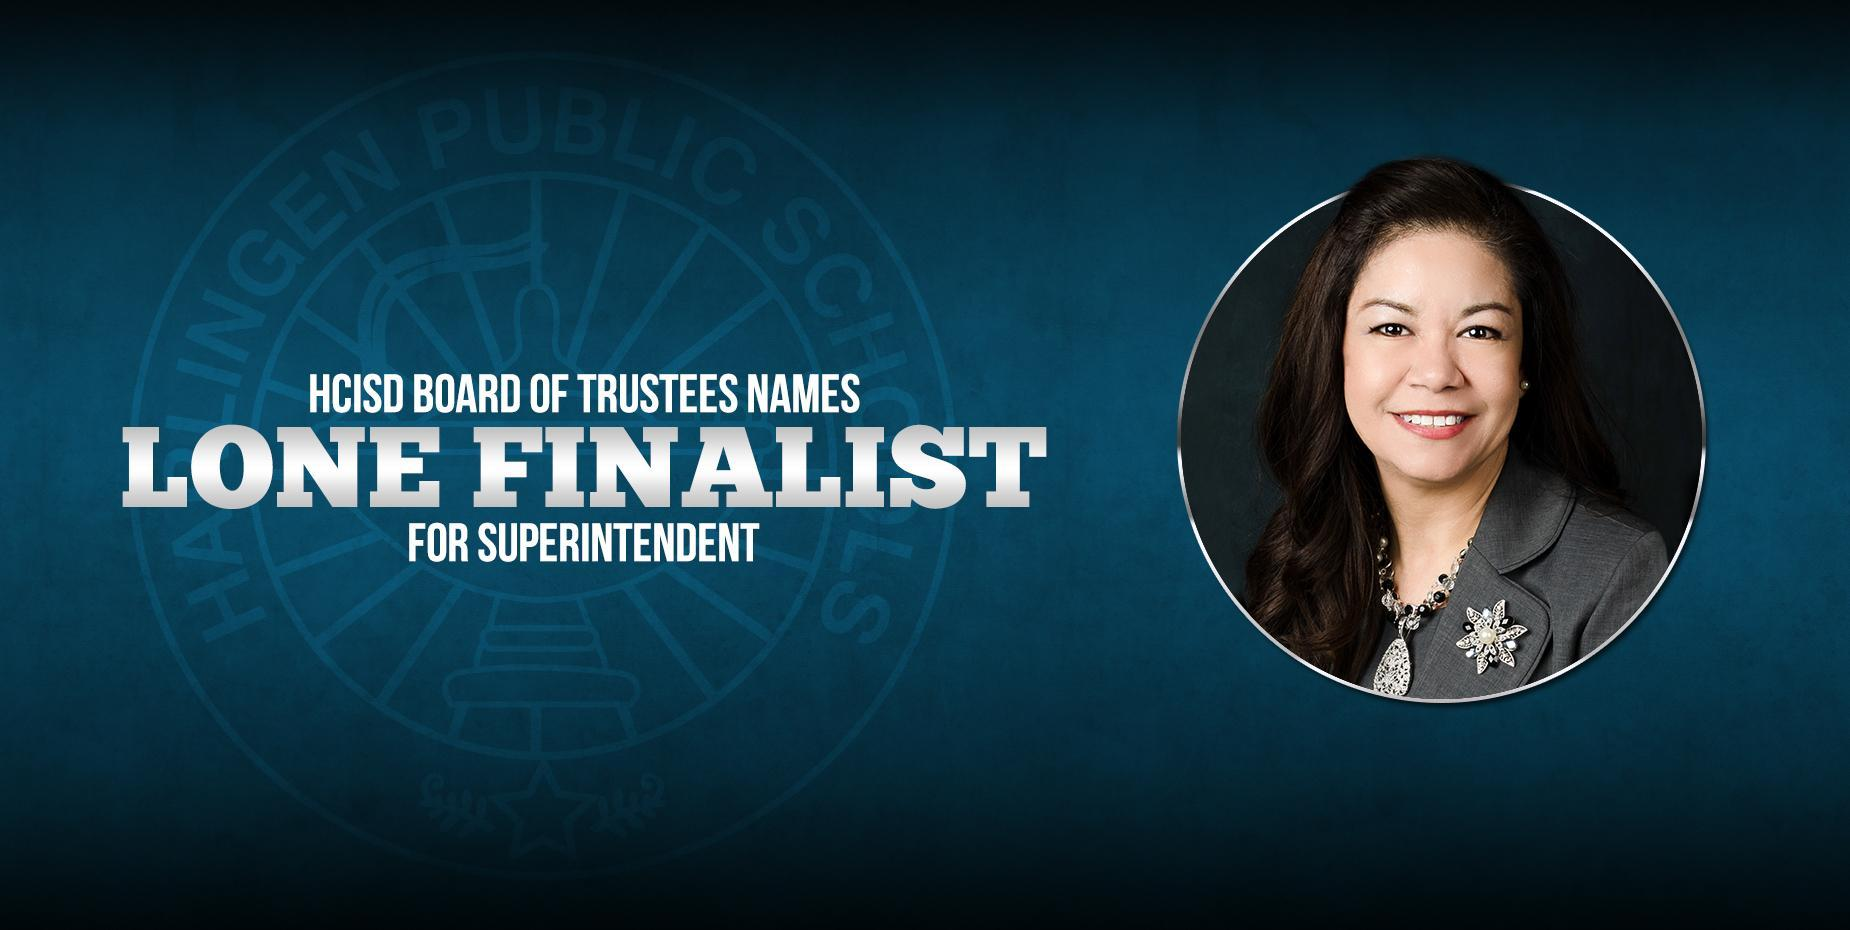 Harlingen CISD Trustees name Dr. Alicia Noyola as finalist for Superintendent position